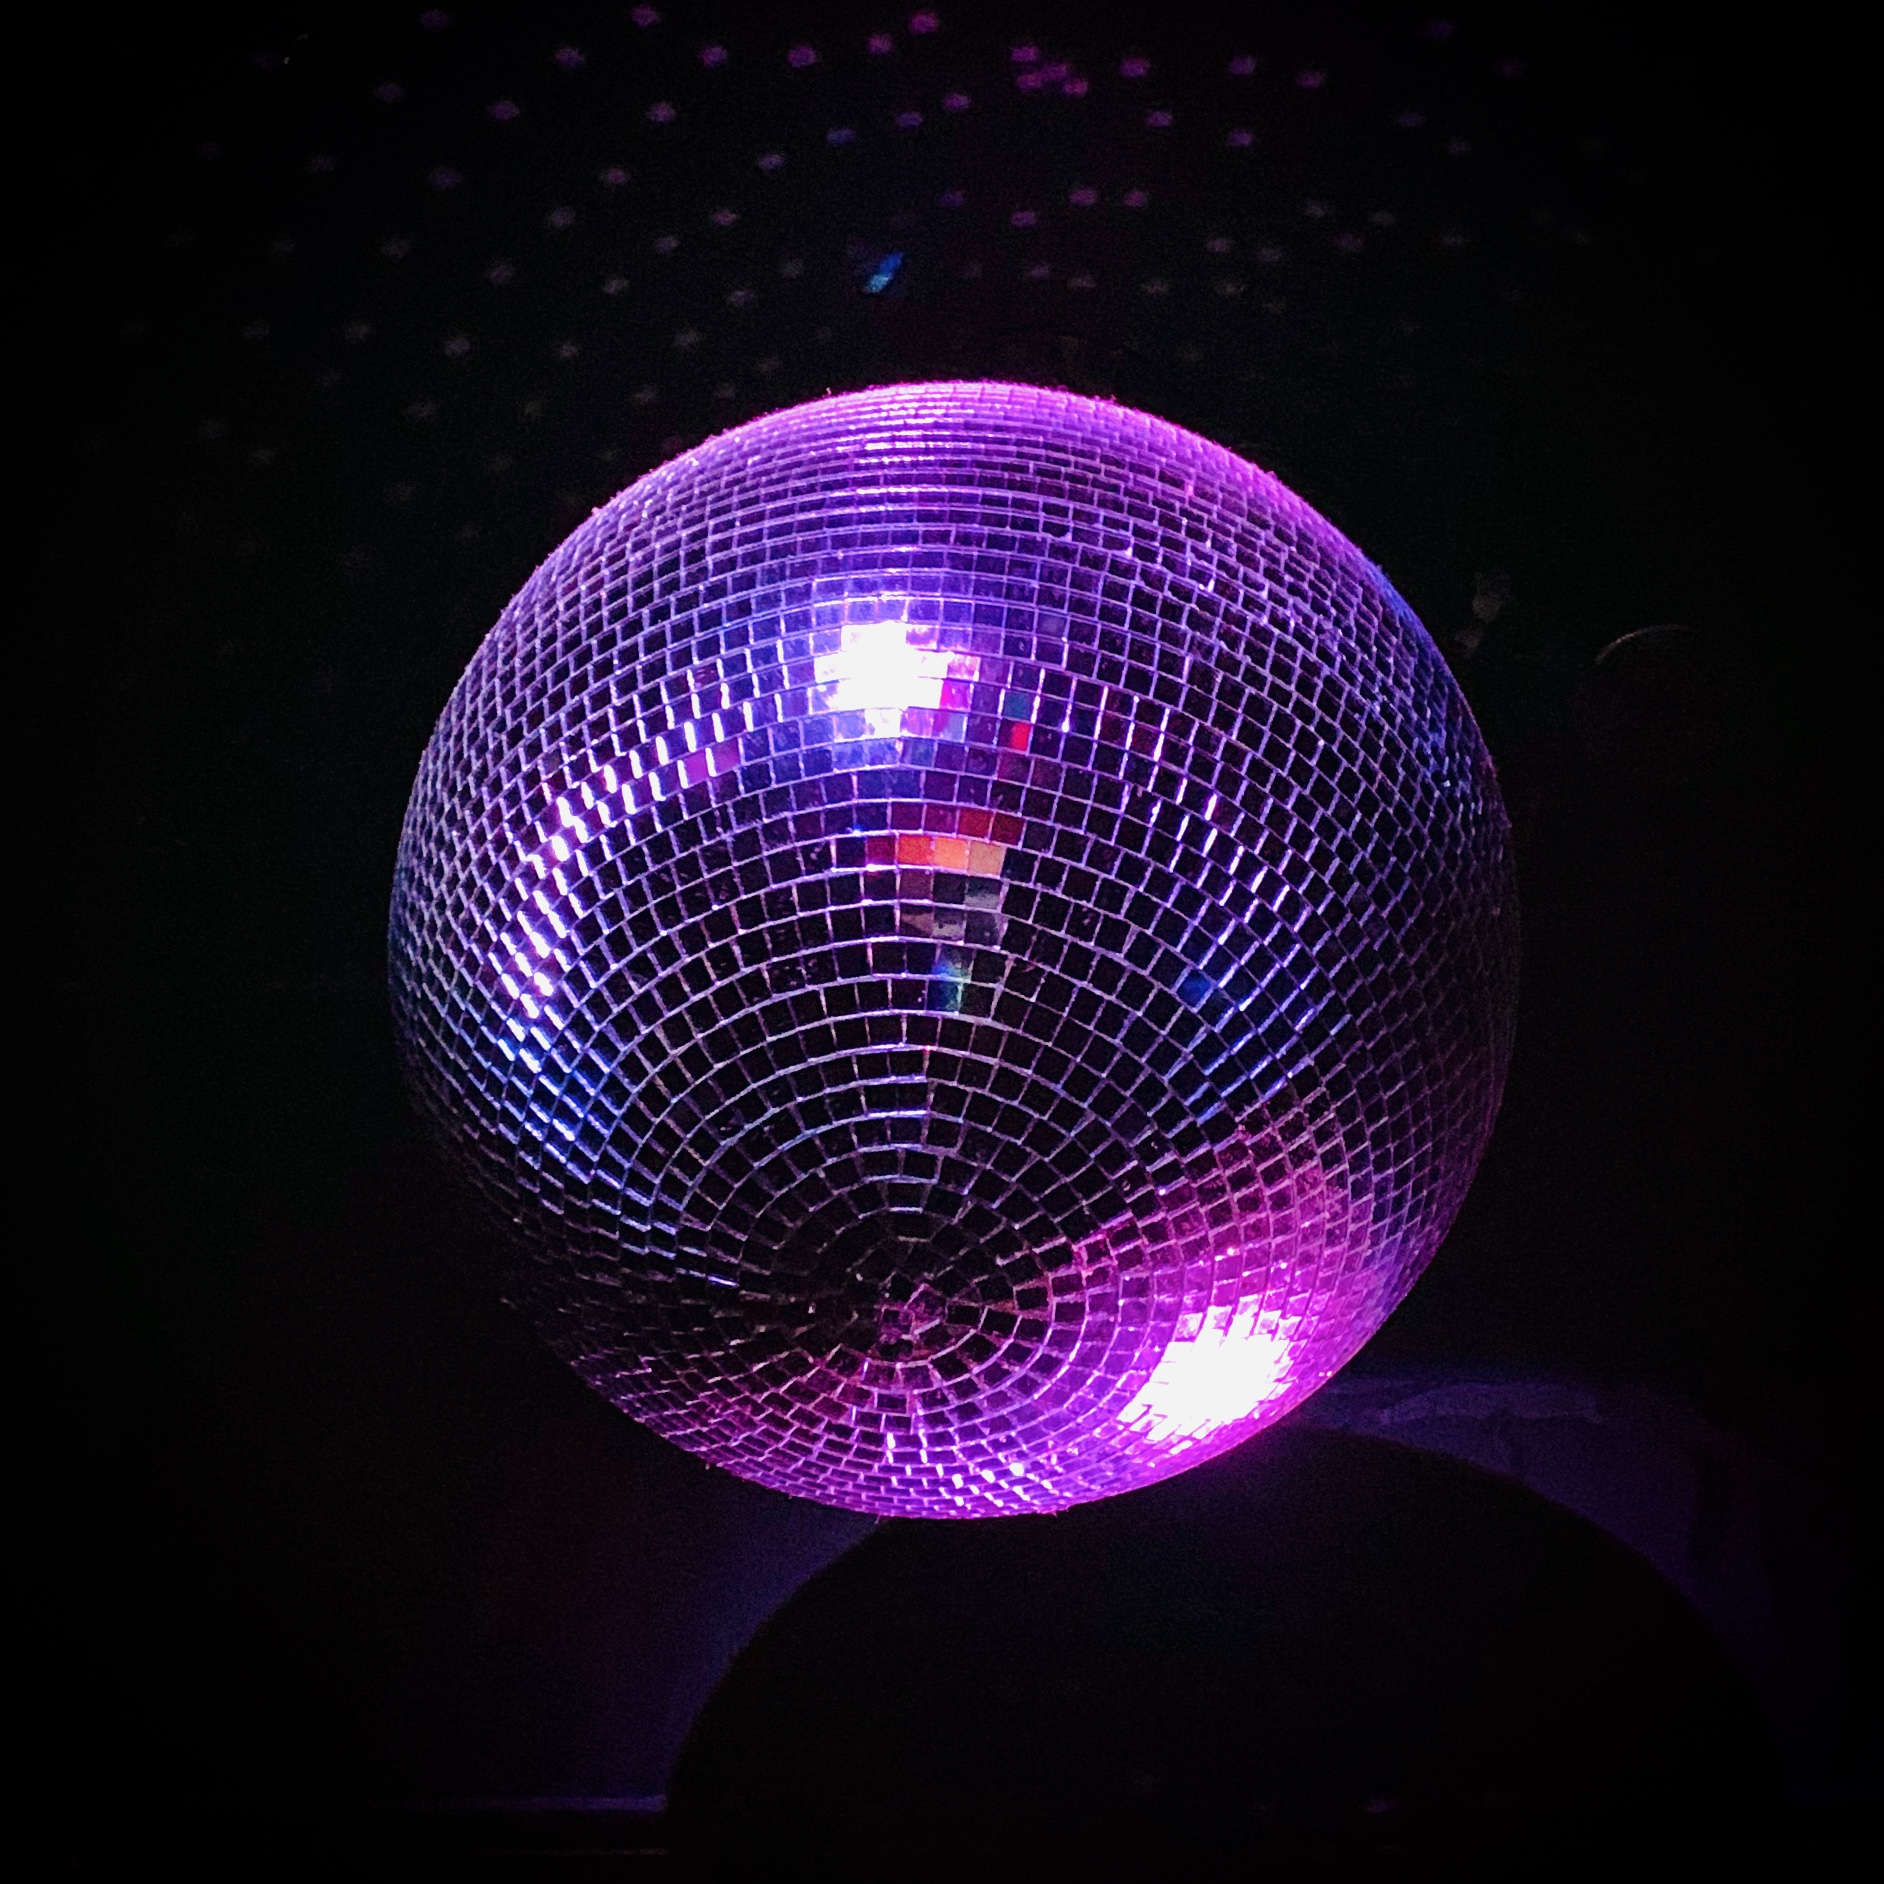 Tokyo ON In The Mix: Mirrorball Magic